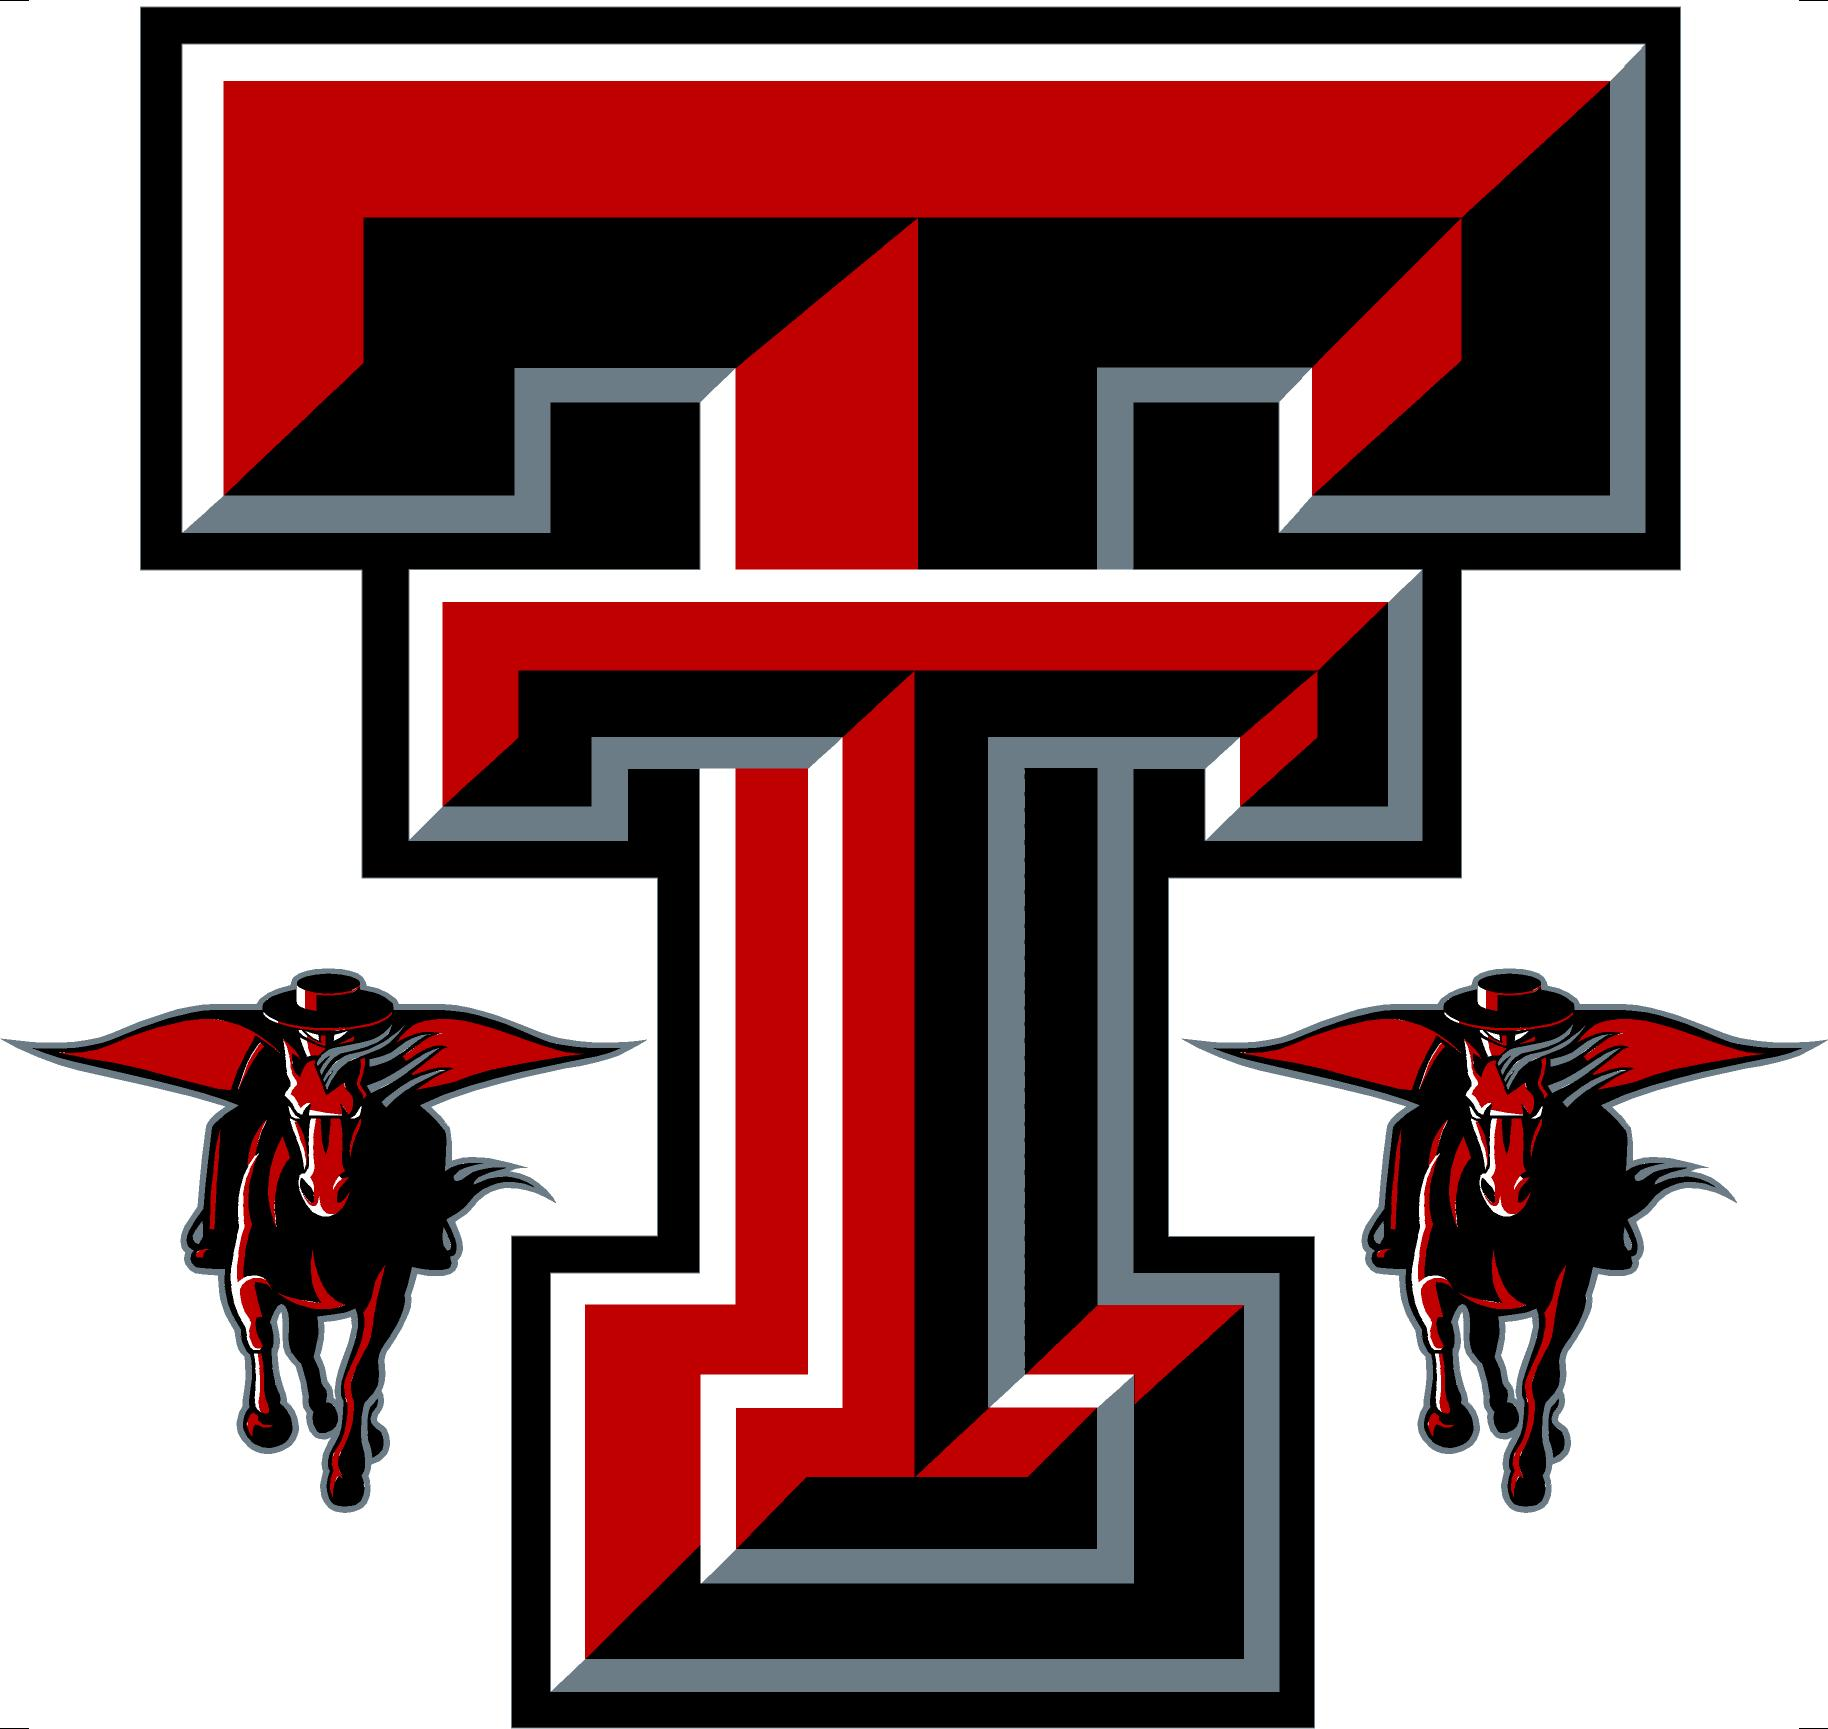 texas tech university logo - group picture, image by tag ...